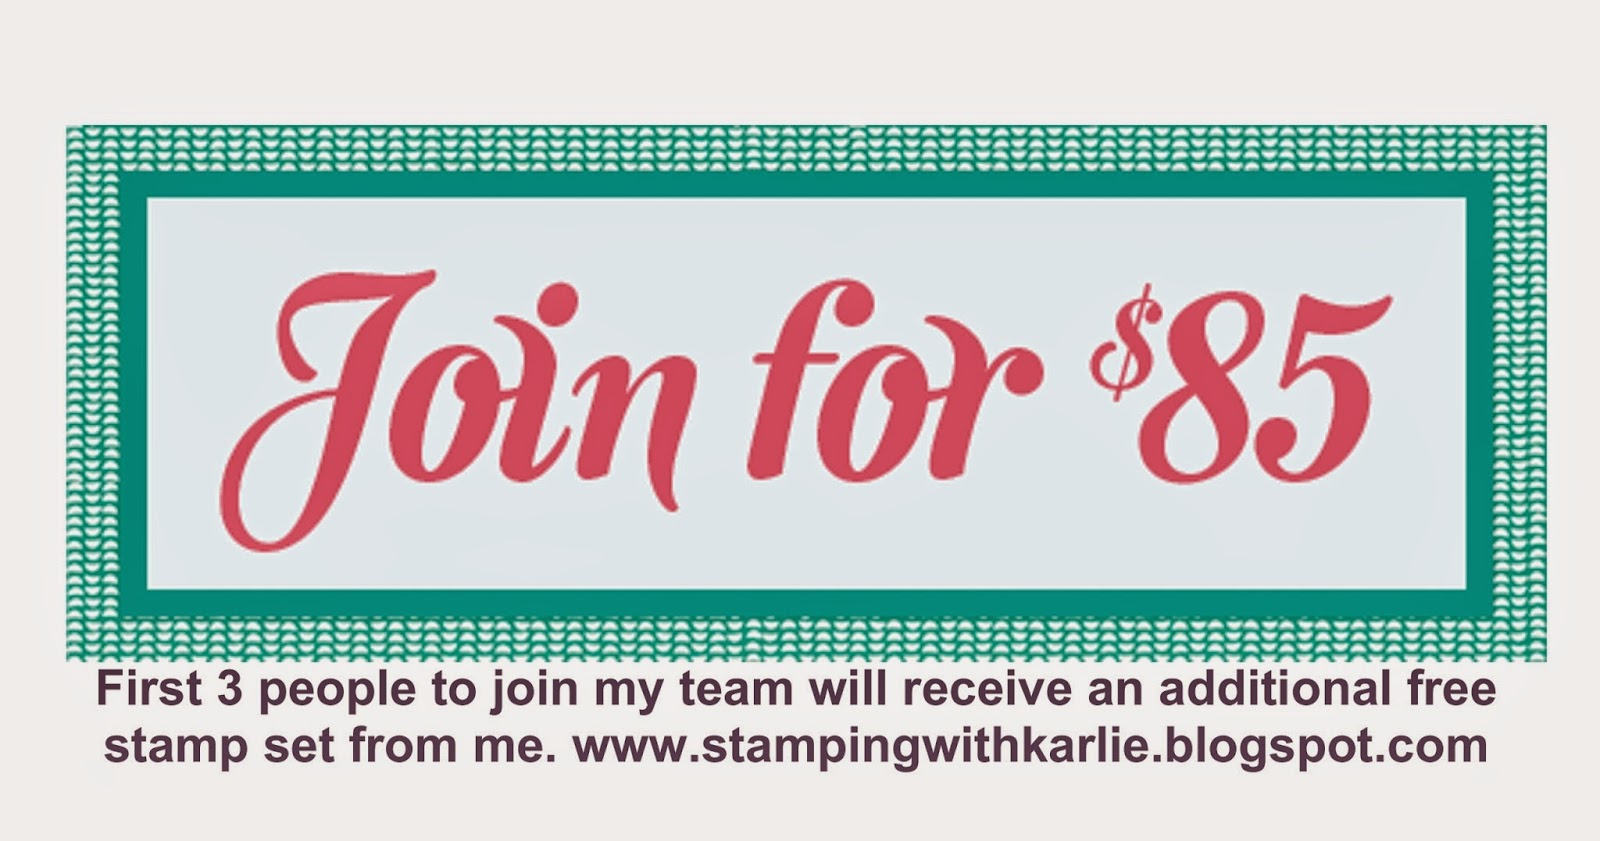 http://www.stampinup.net/esuite/home/stampingwithkarlie/jointhefun